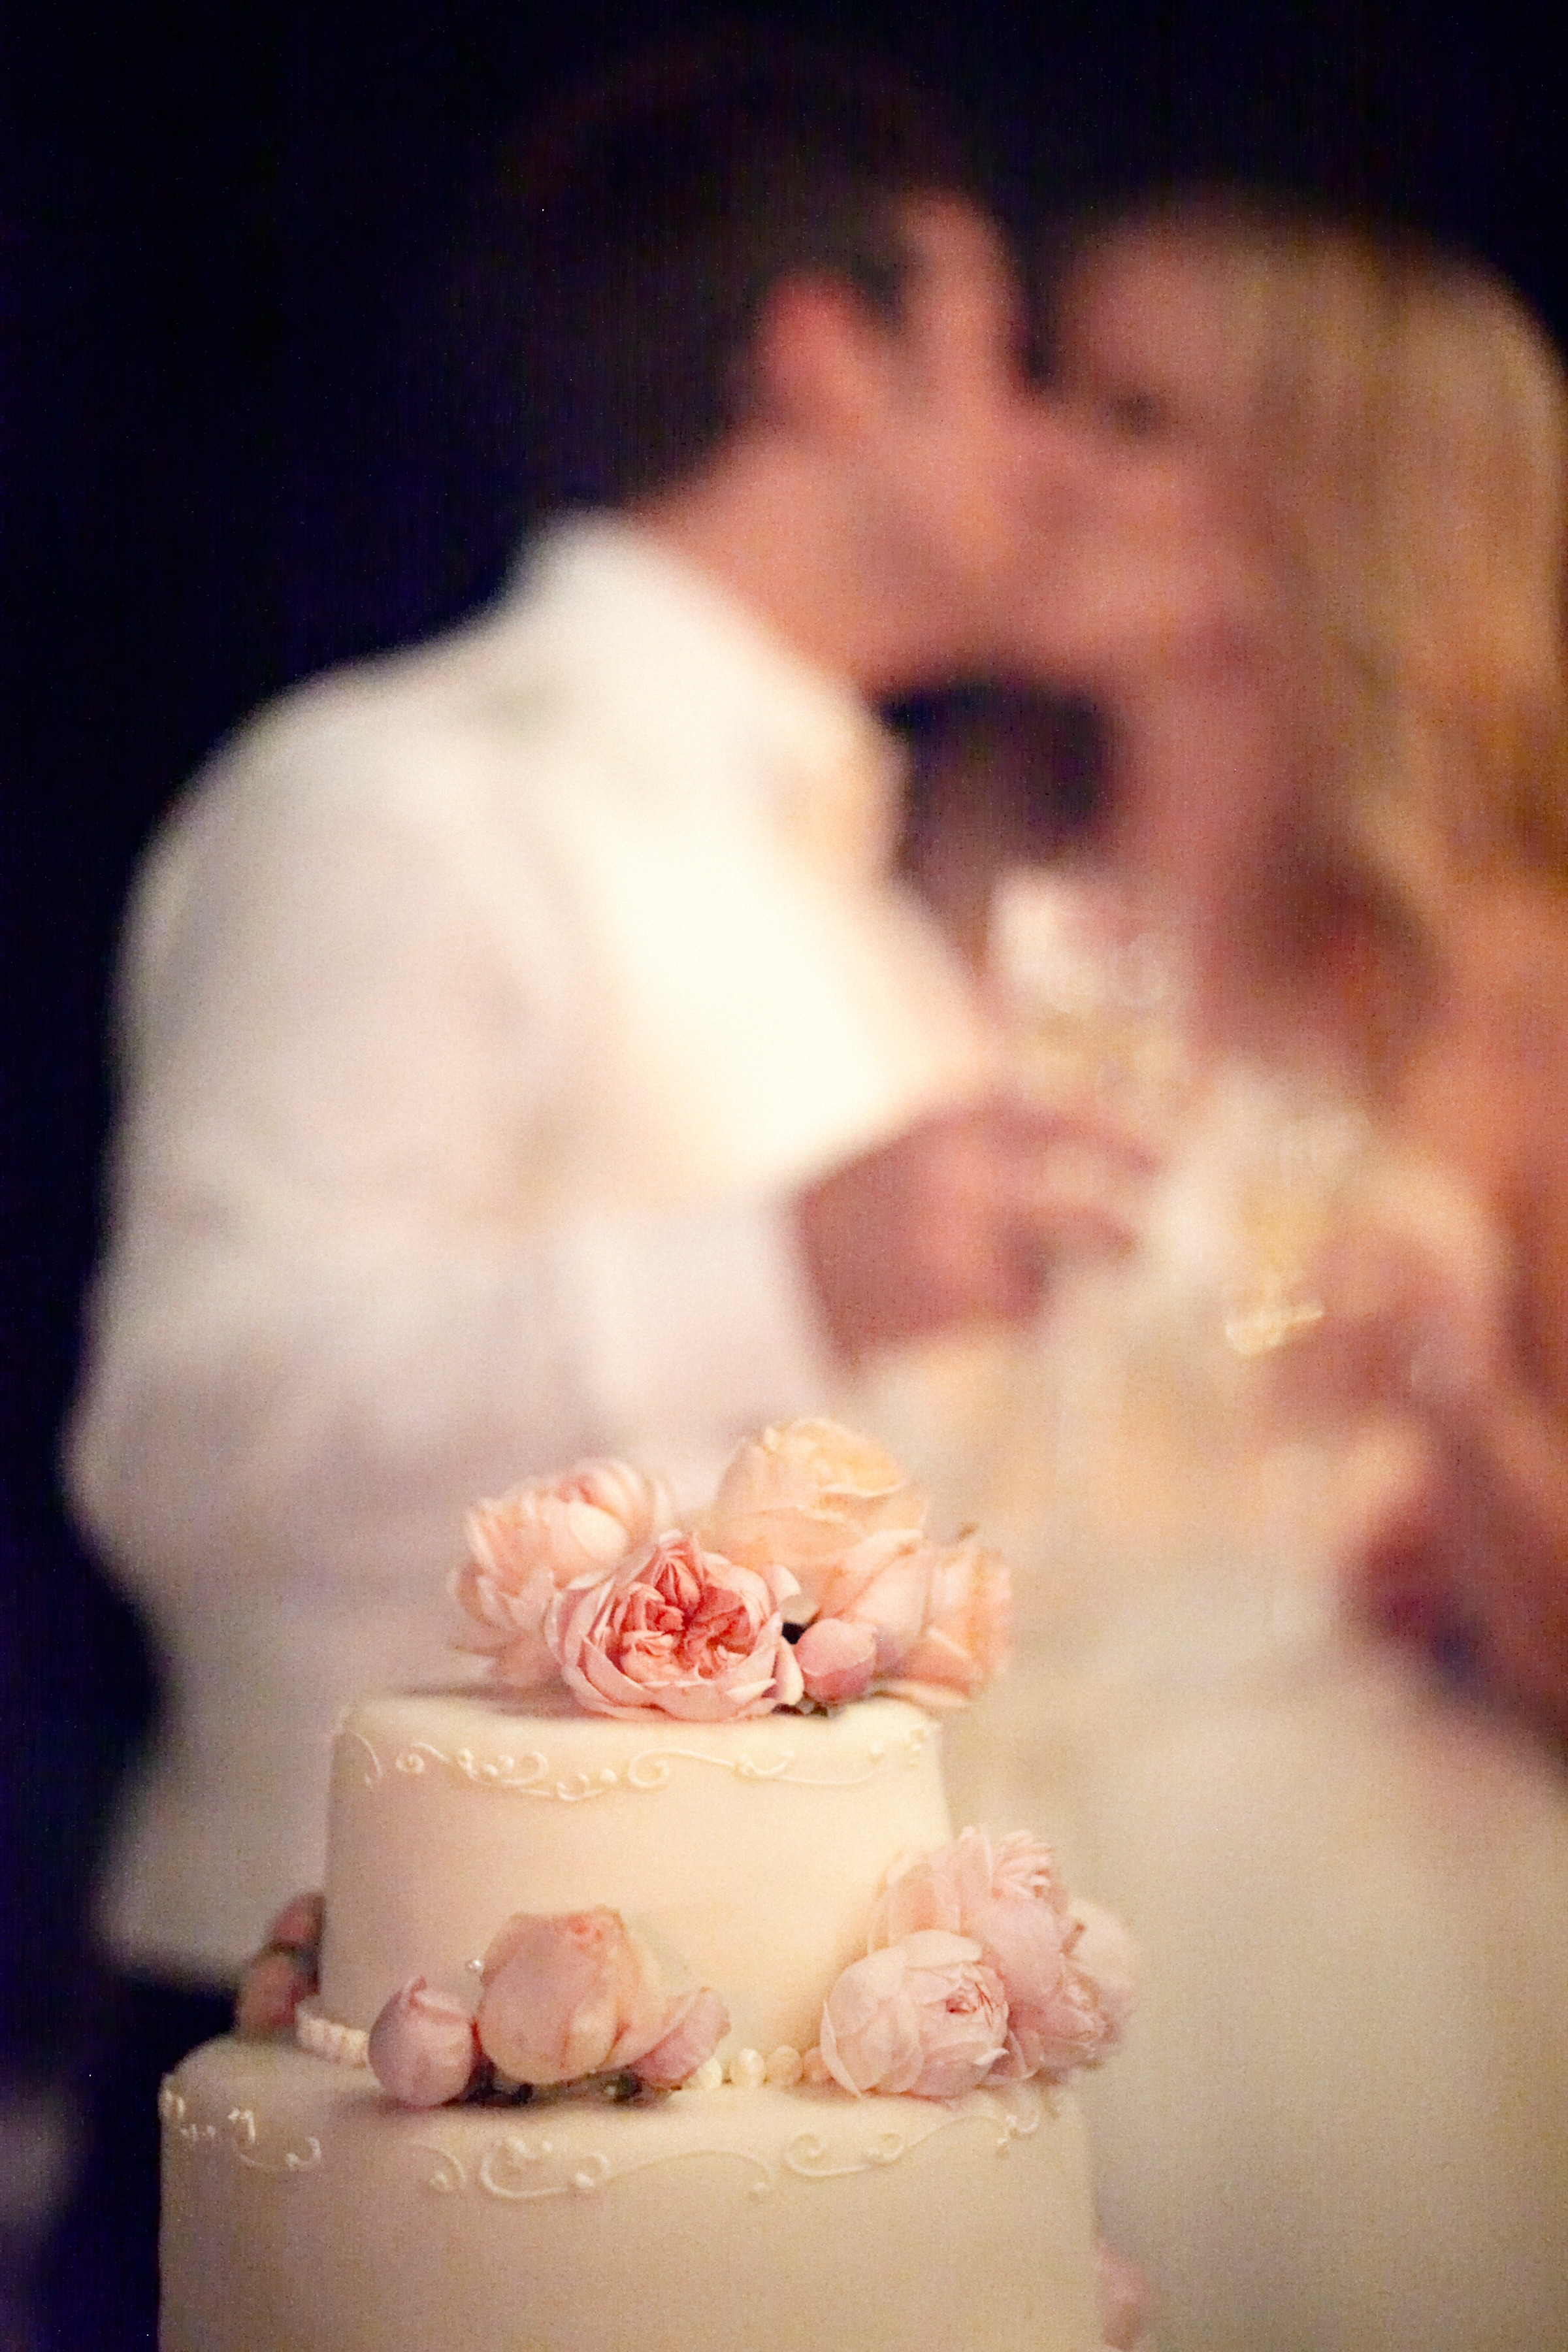 romantic-wedding-cake-estate-wedding